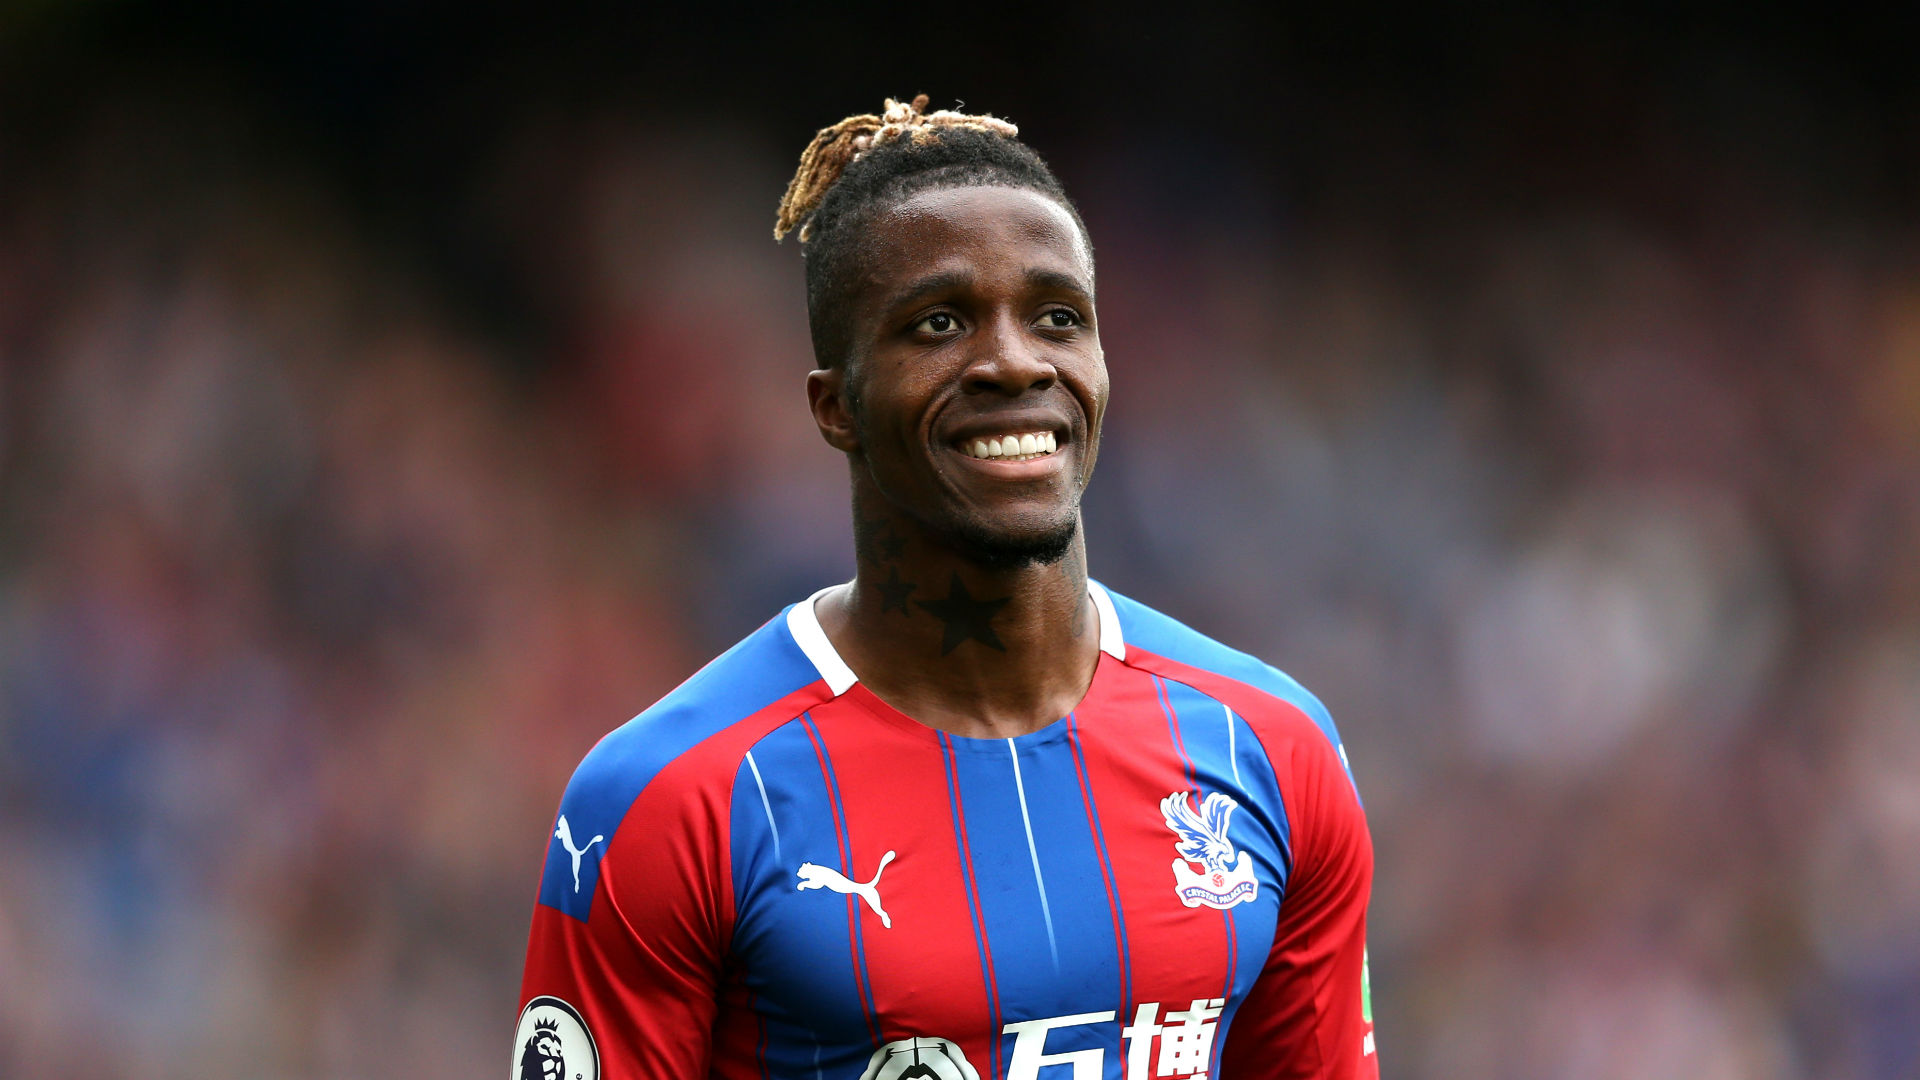 arsenal and chelsea battle for 8om zaha - Bóng Đá